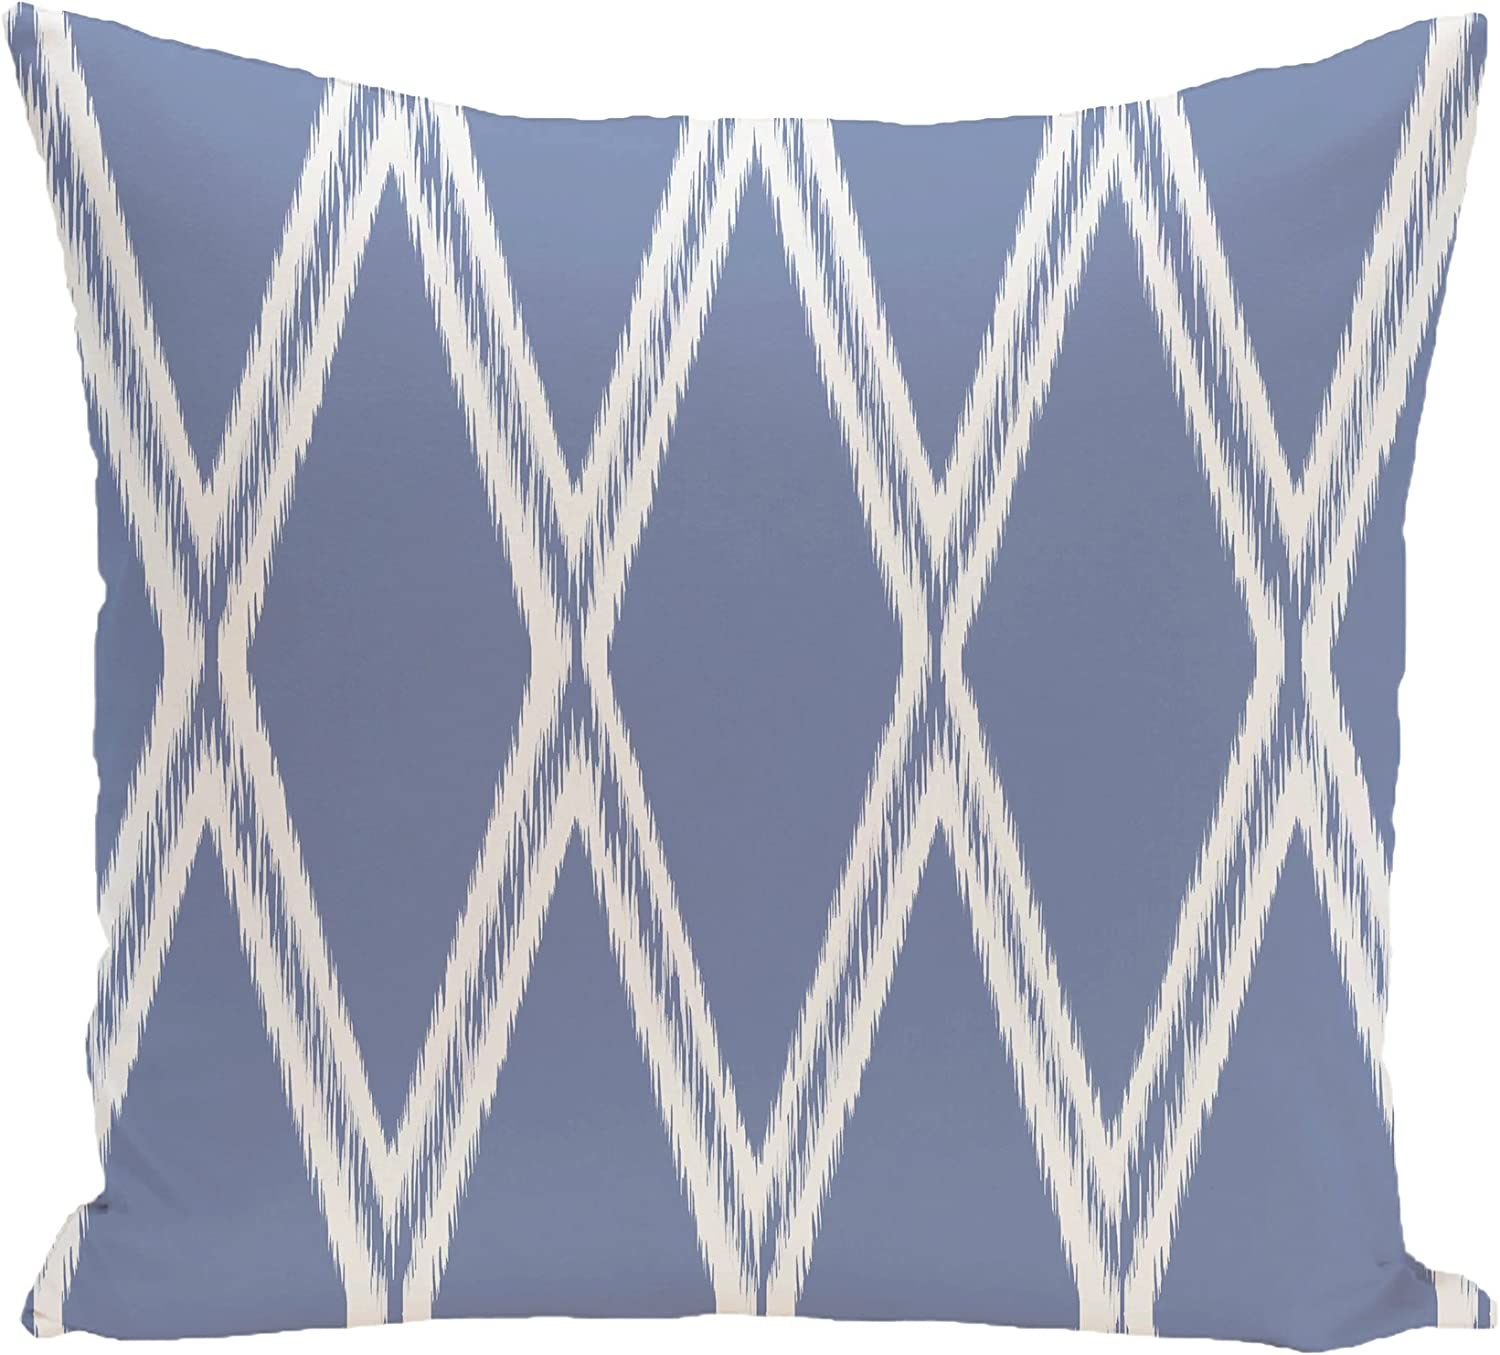 Bewitching E by design Gate Keeper Geometric Print Pillow 16-Inch Length